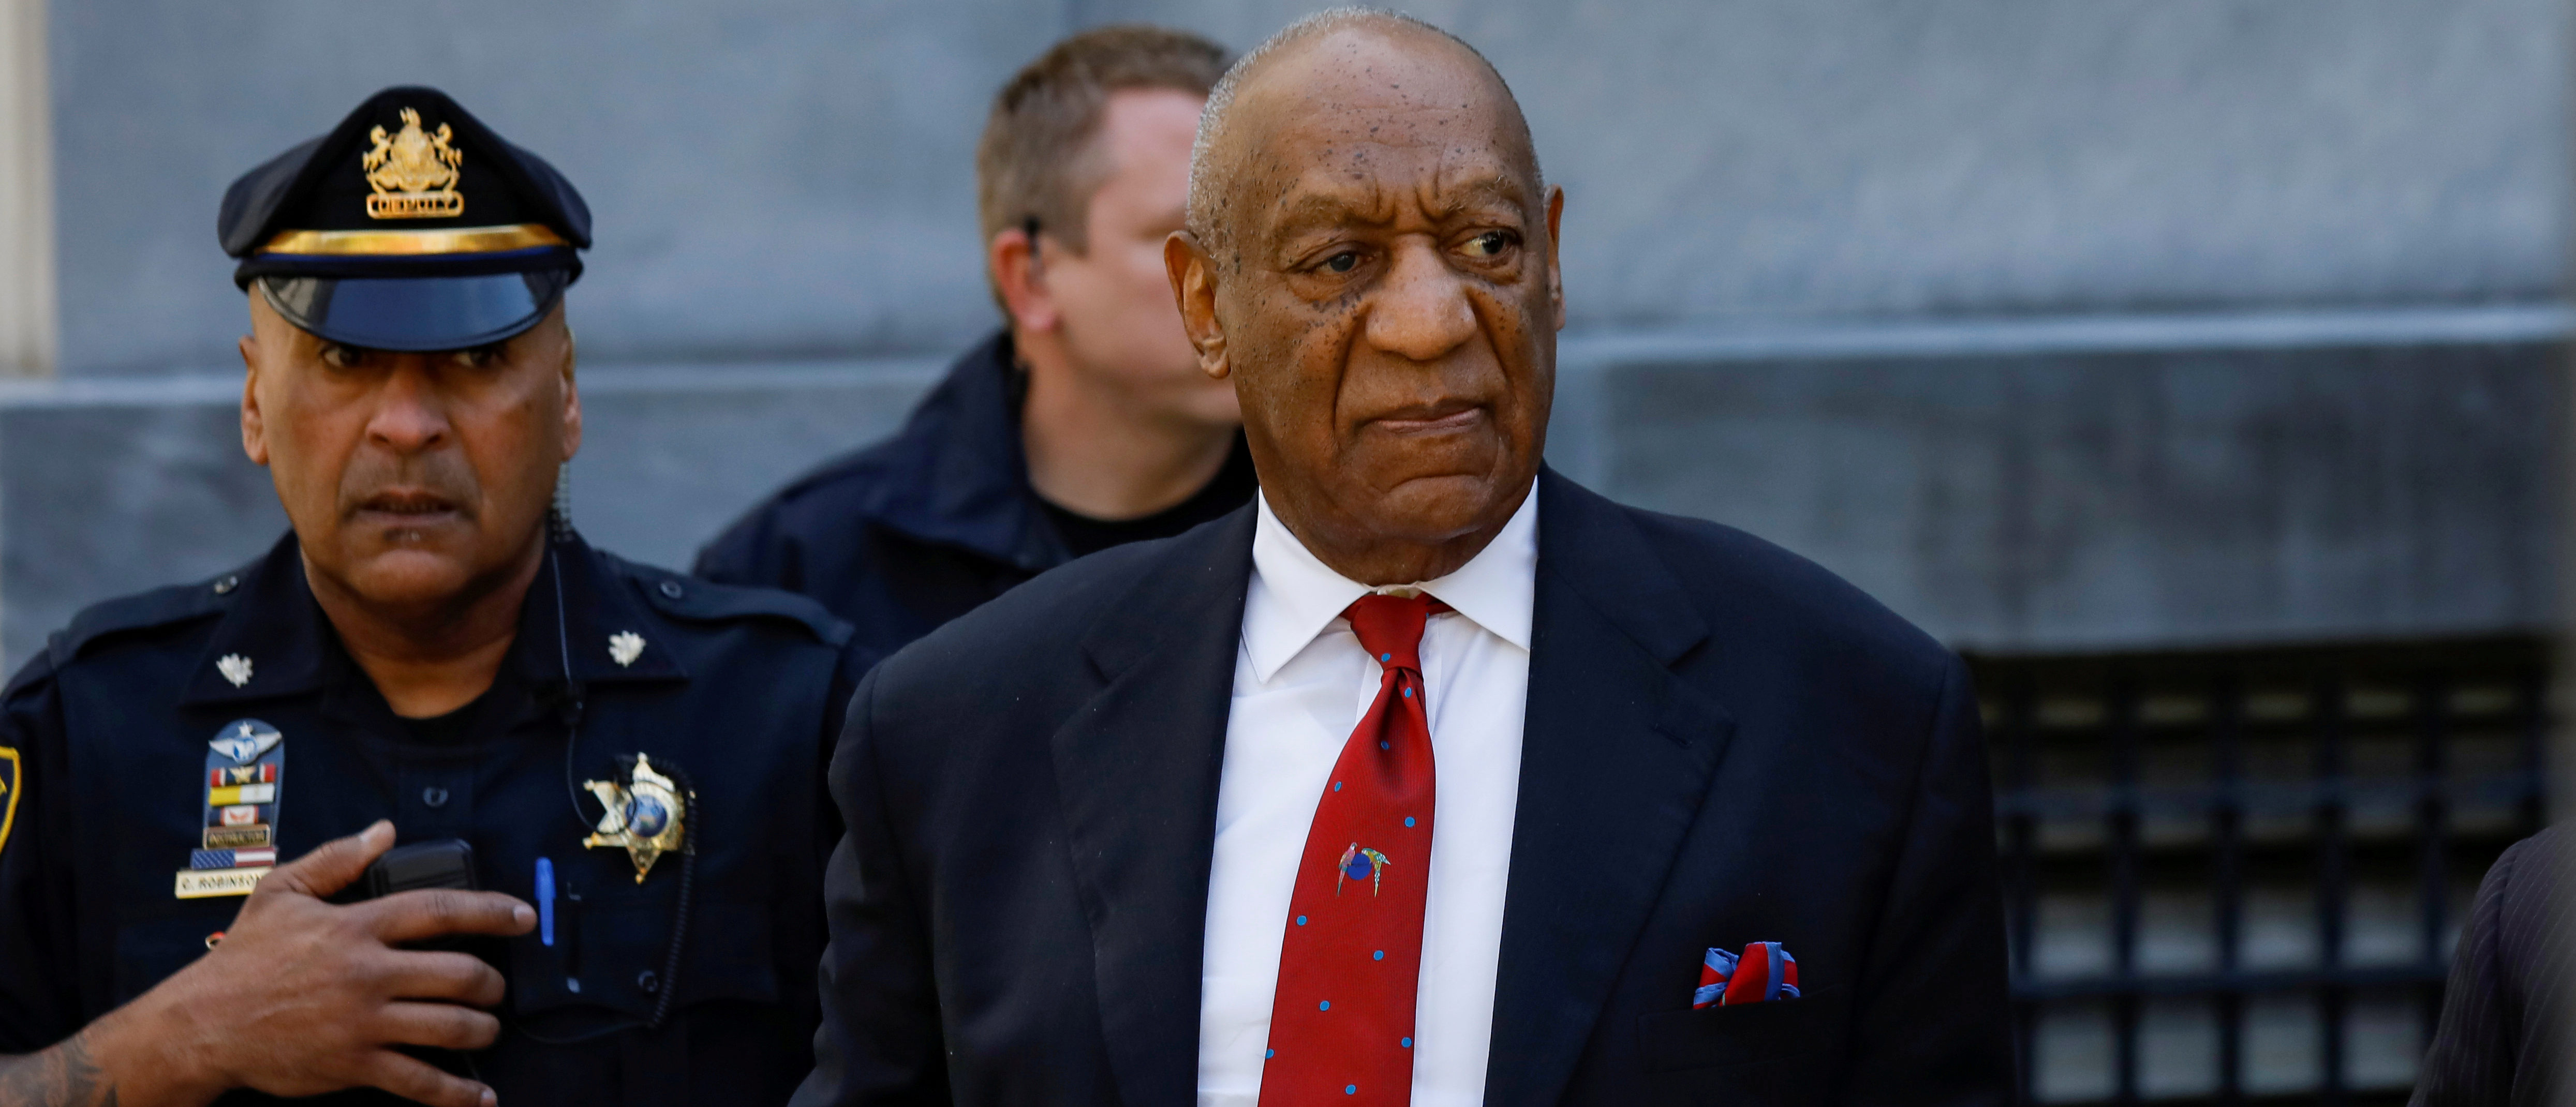 FILE PHOTO: Actor and comedian Bill Cosby exits the Montgomery County Courthouse after a jury convicted him in a sexual assault retrial in Norristown, Pennsylvania, April 26, 2018. REUTERS/Brendan McDermid/File Photo